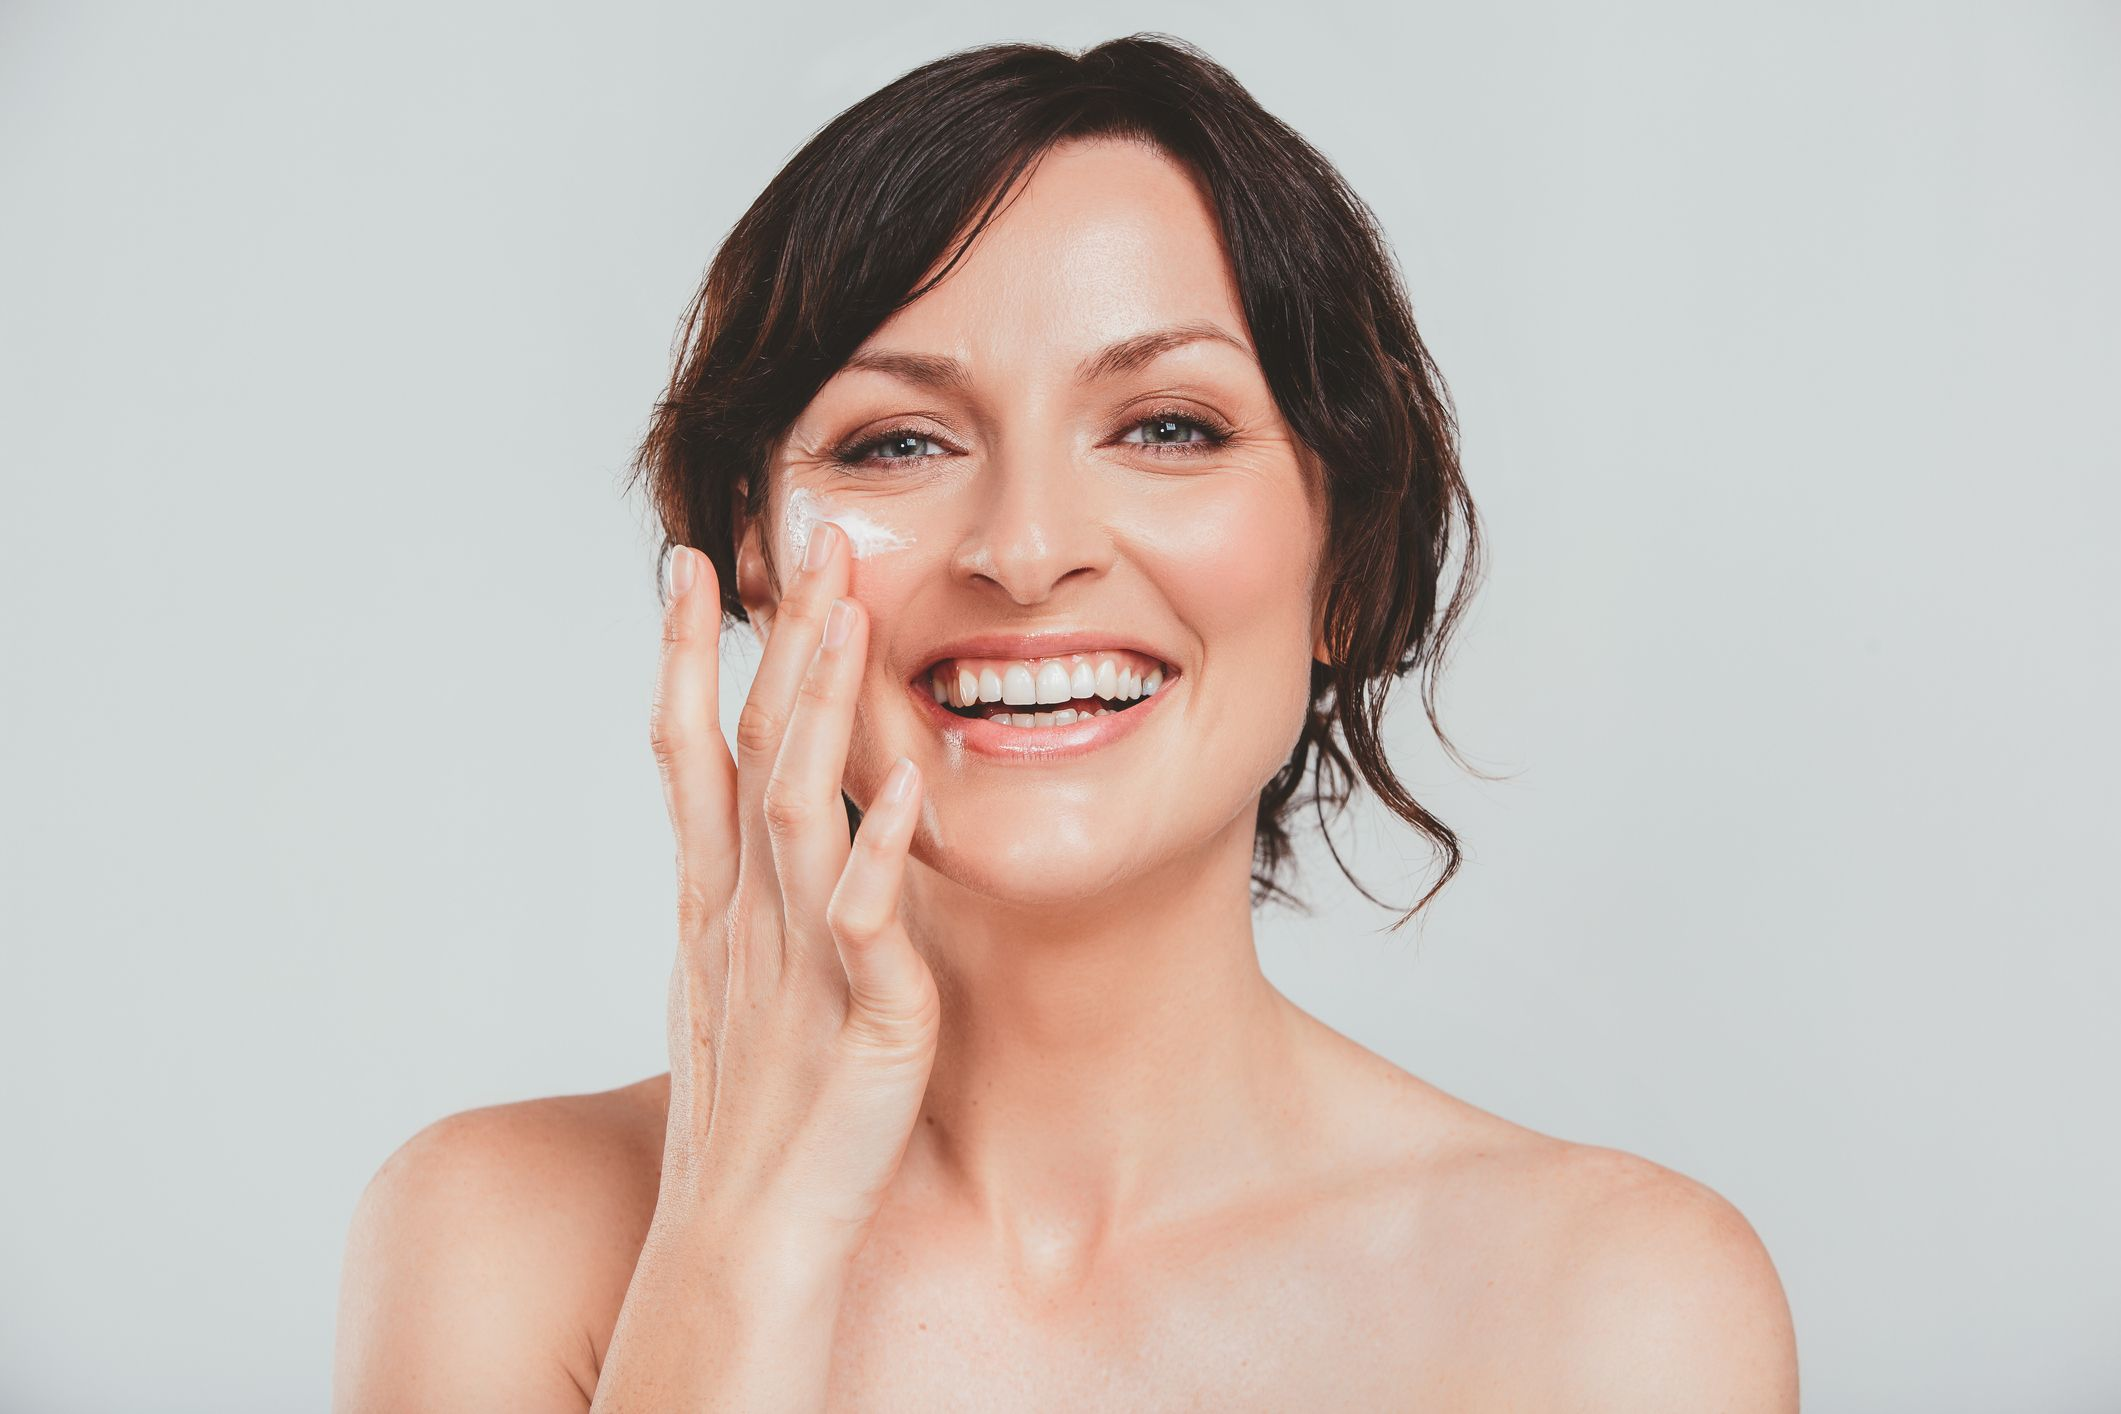 Fine Lines How To Prevent And Reduce Fine Lines And Wrinkles